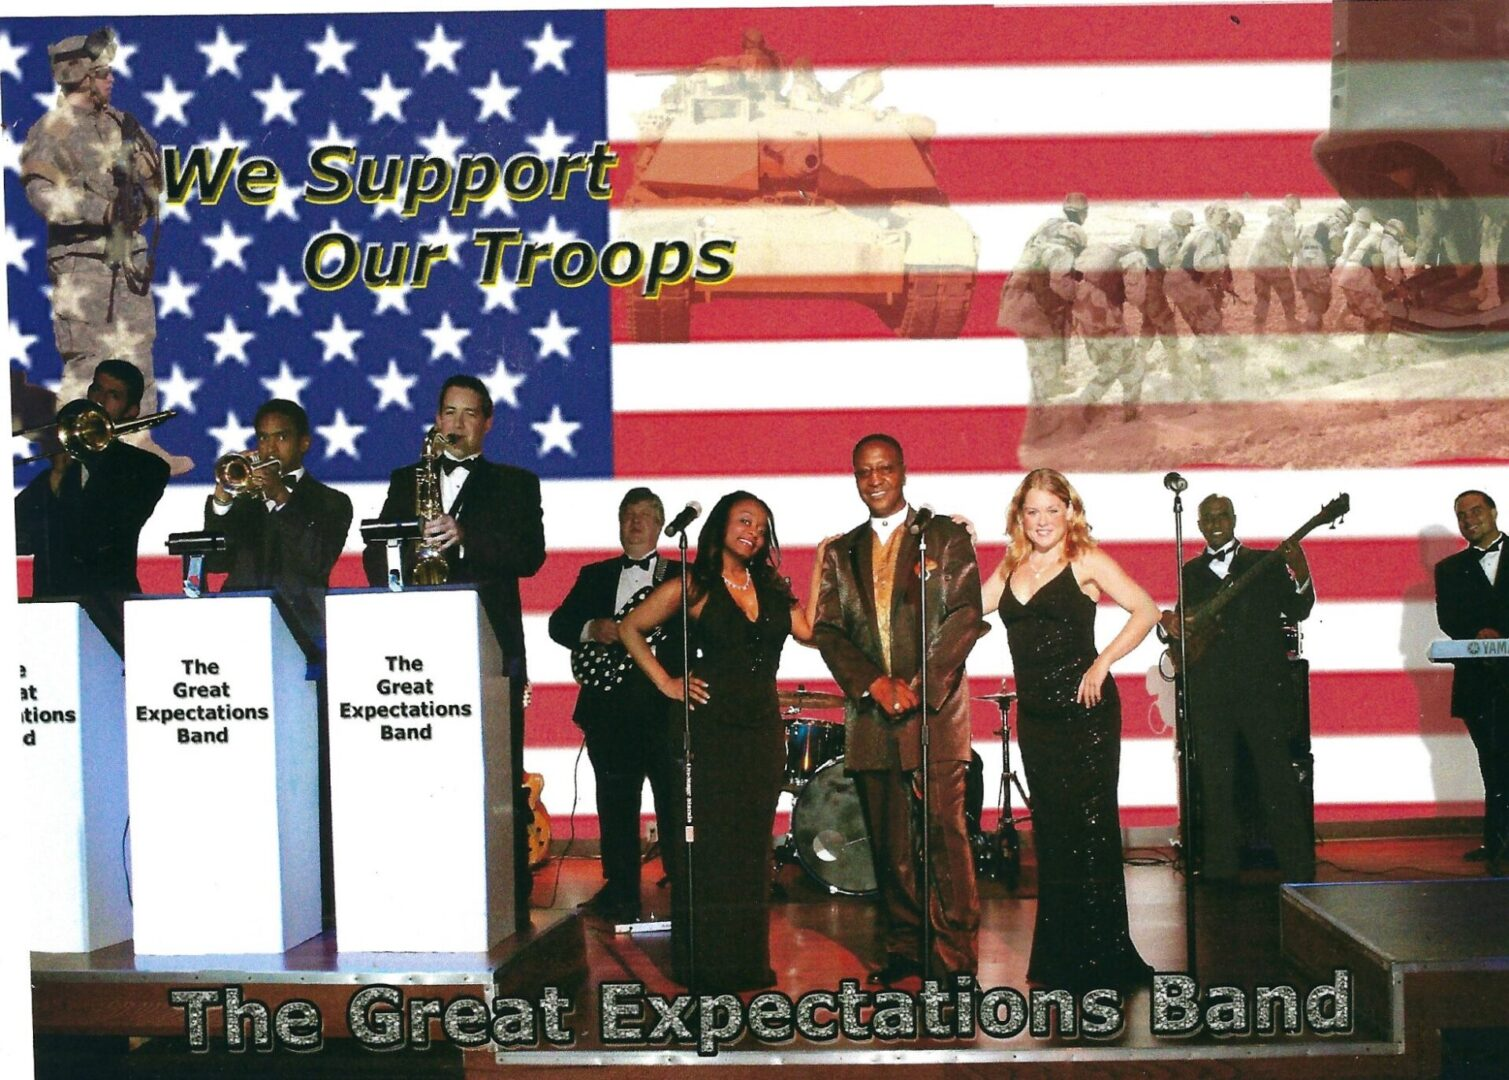 the great expectations band with the American flag in their background